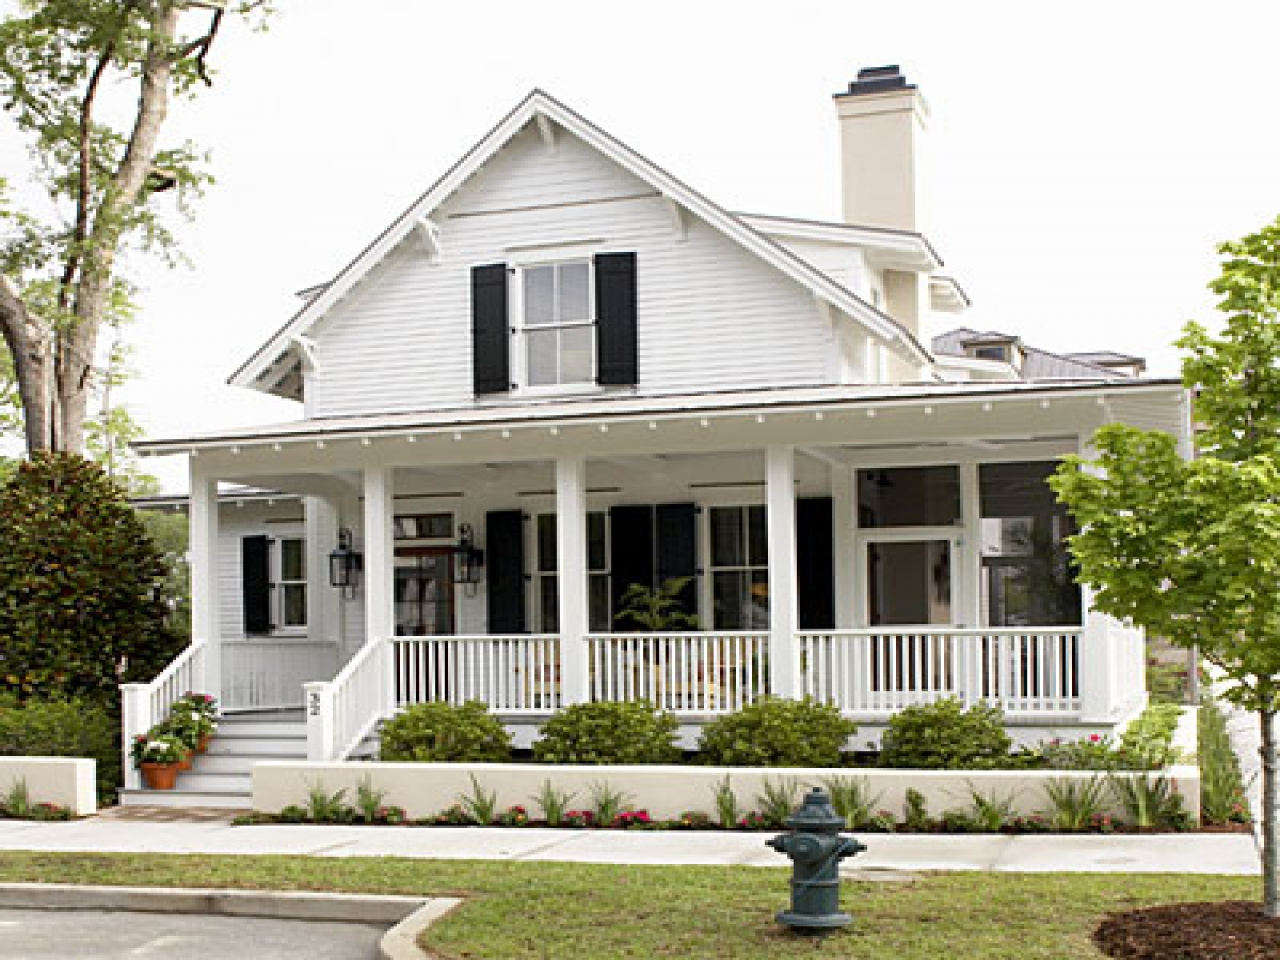 Tiny Victorian House Plans Small Cabins Tiny Houses Homes: Victorian Cottage Home Plan Small Victorian Cottage Floor